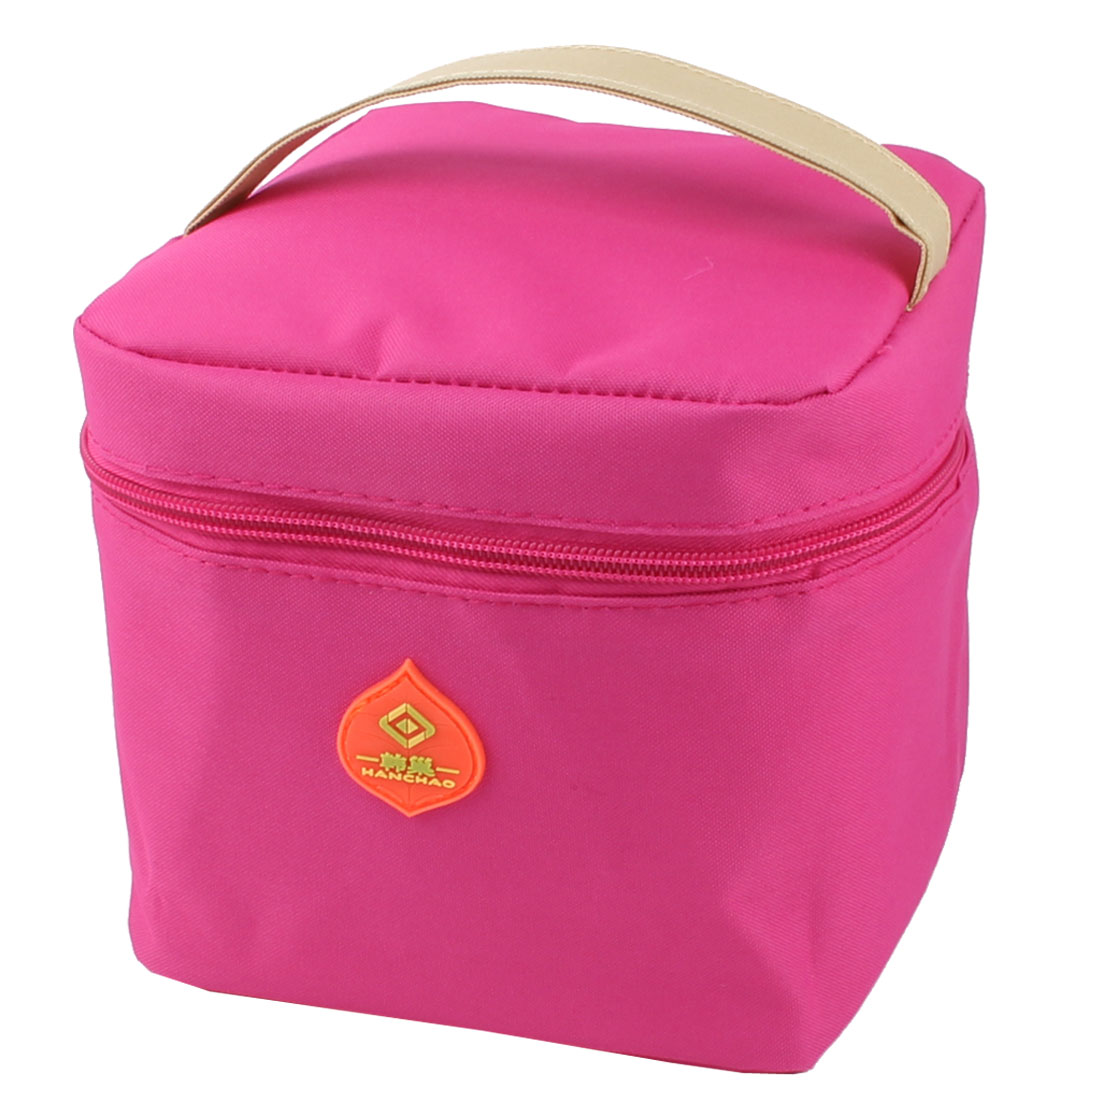 Outdoor Picnic Portable Thermal Insulated Cooler Bag Lunch Pouch Container Fuchsia